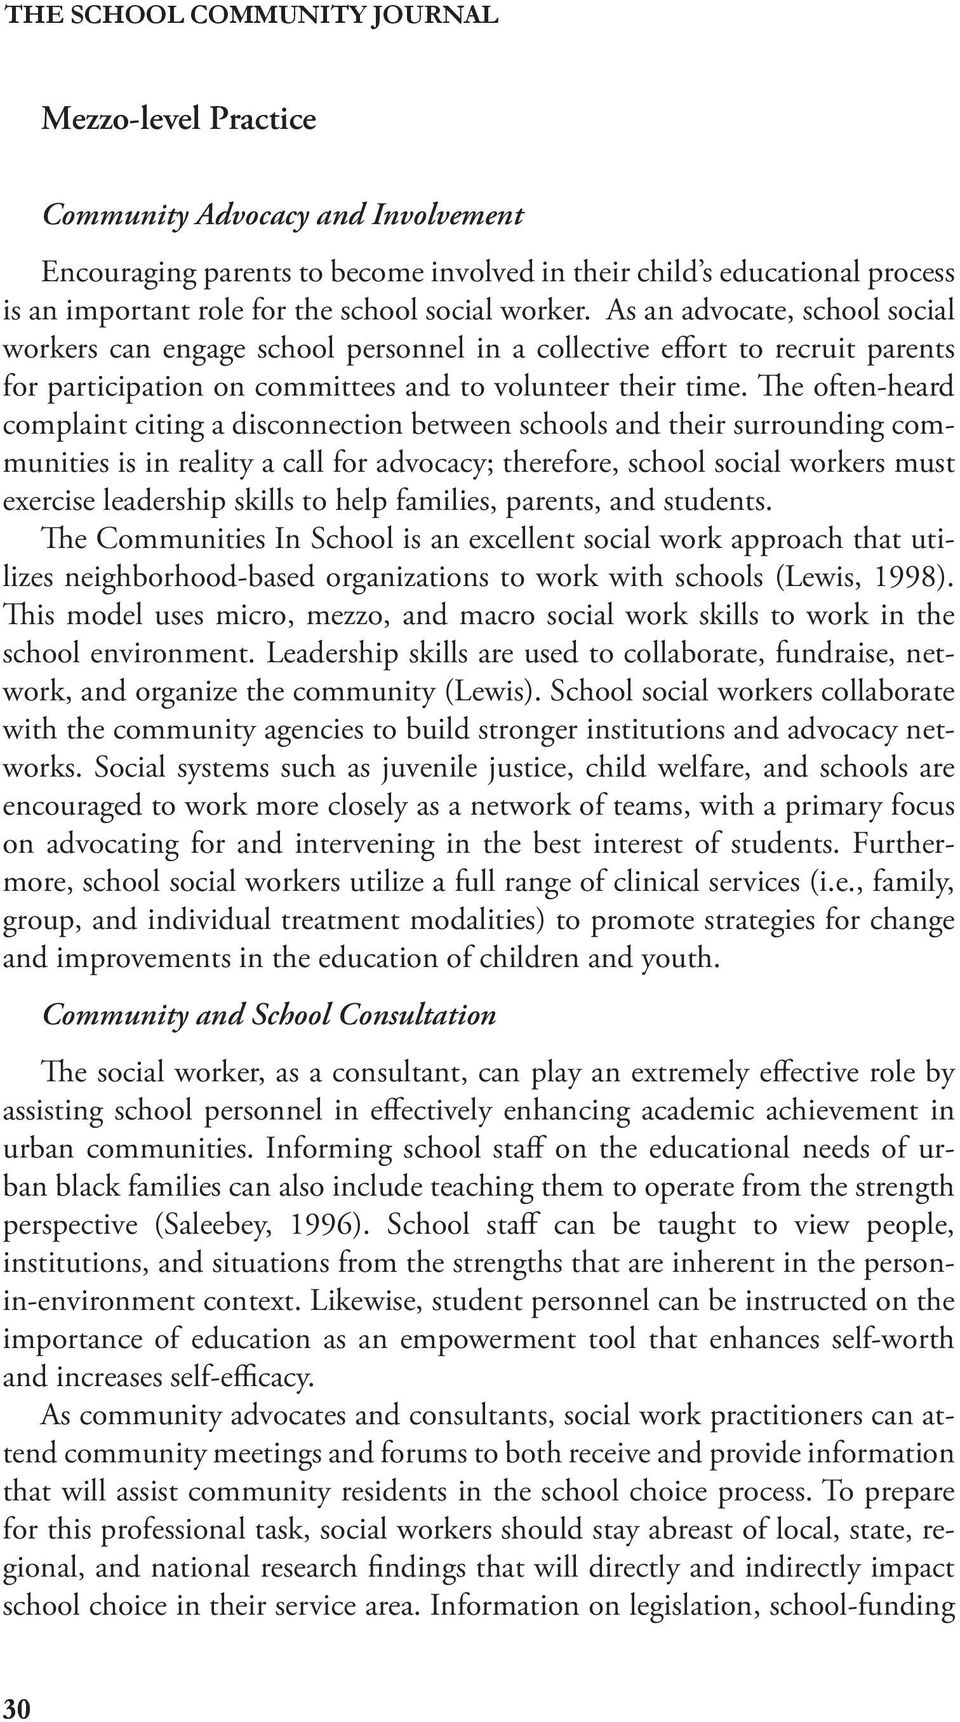 e often-heard complaint citing a disconnection between schools and their surrounding communities is in reality a call for advocacy; therefore, school social workers must exercise leadership skills to